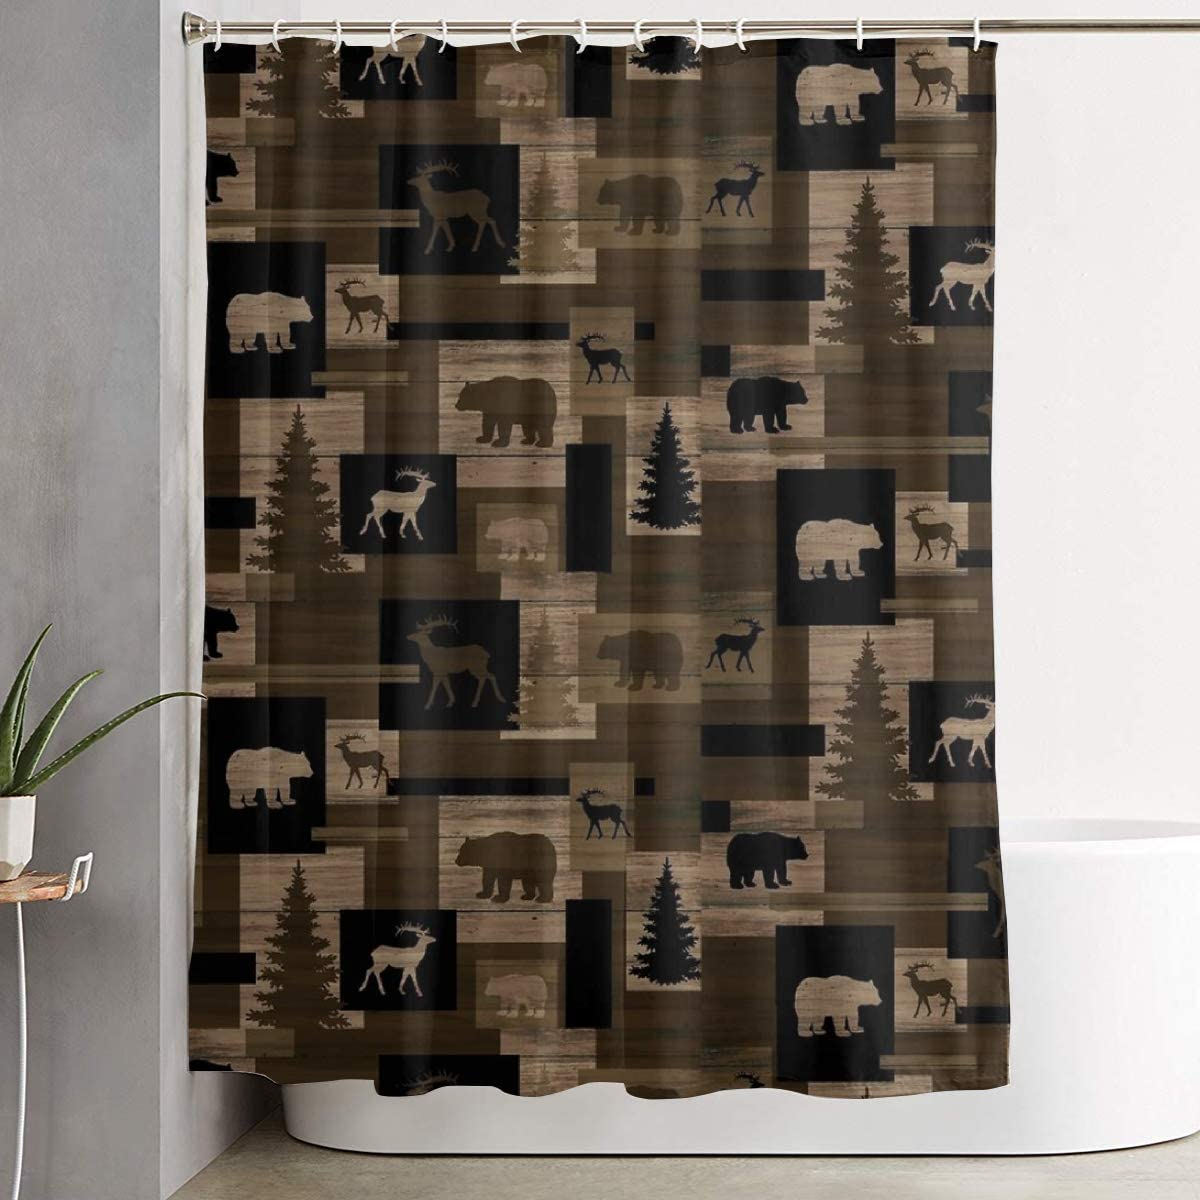 Two Deer in Maple Woods Bathroom Fabric Shower Curtain Extra Long 84 Inches New